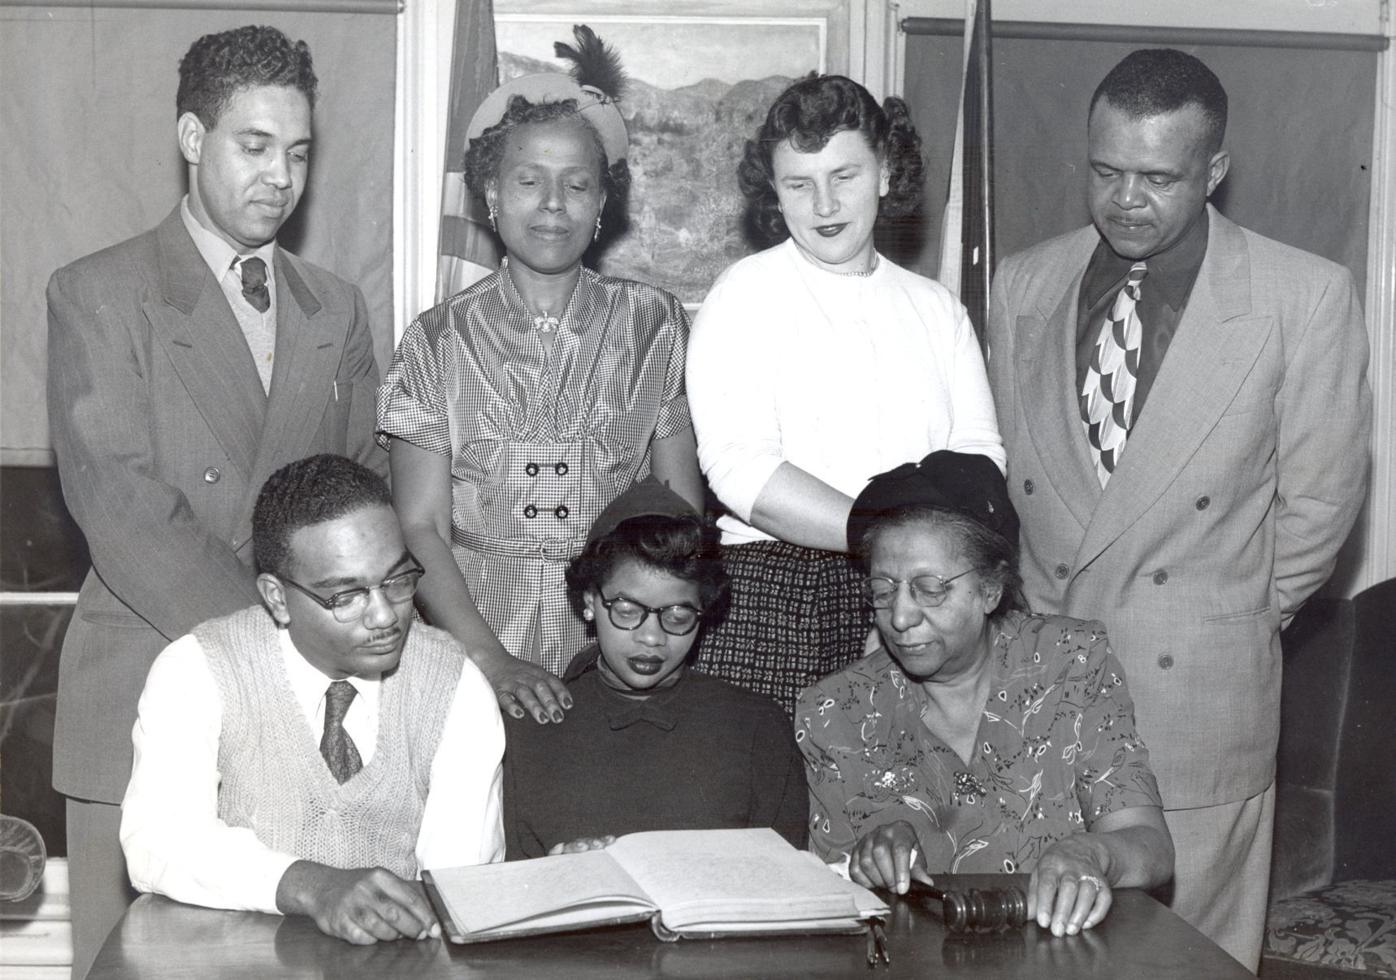 Local history: Group started a century ago to focus on advancement of Black residents